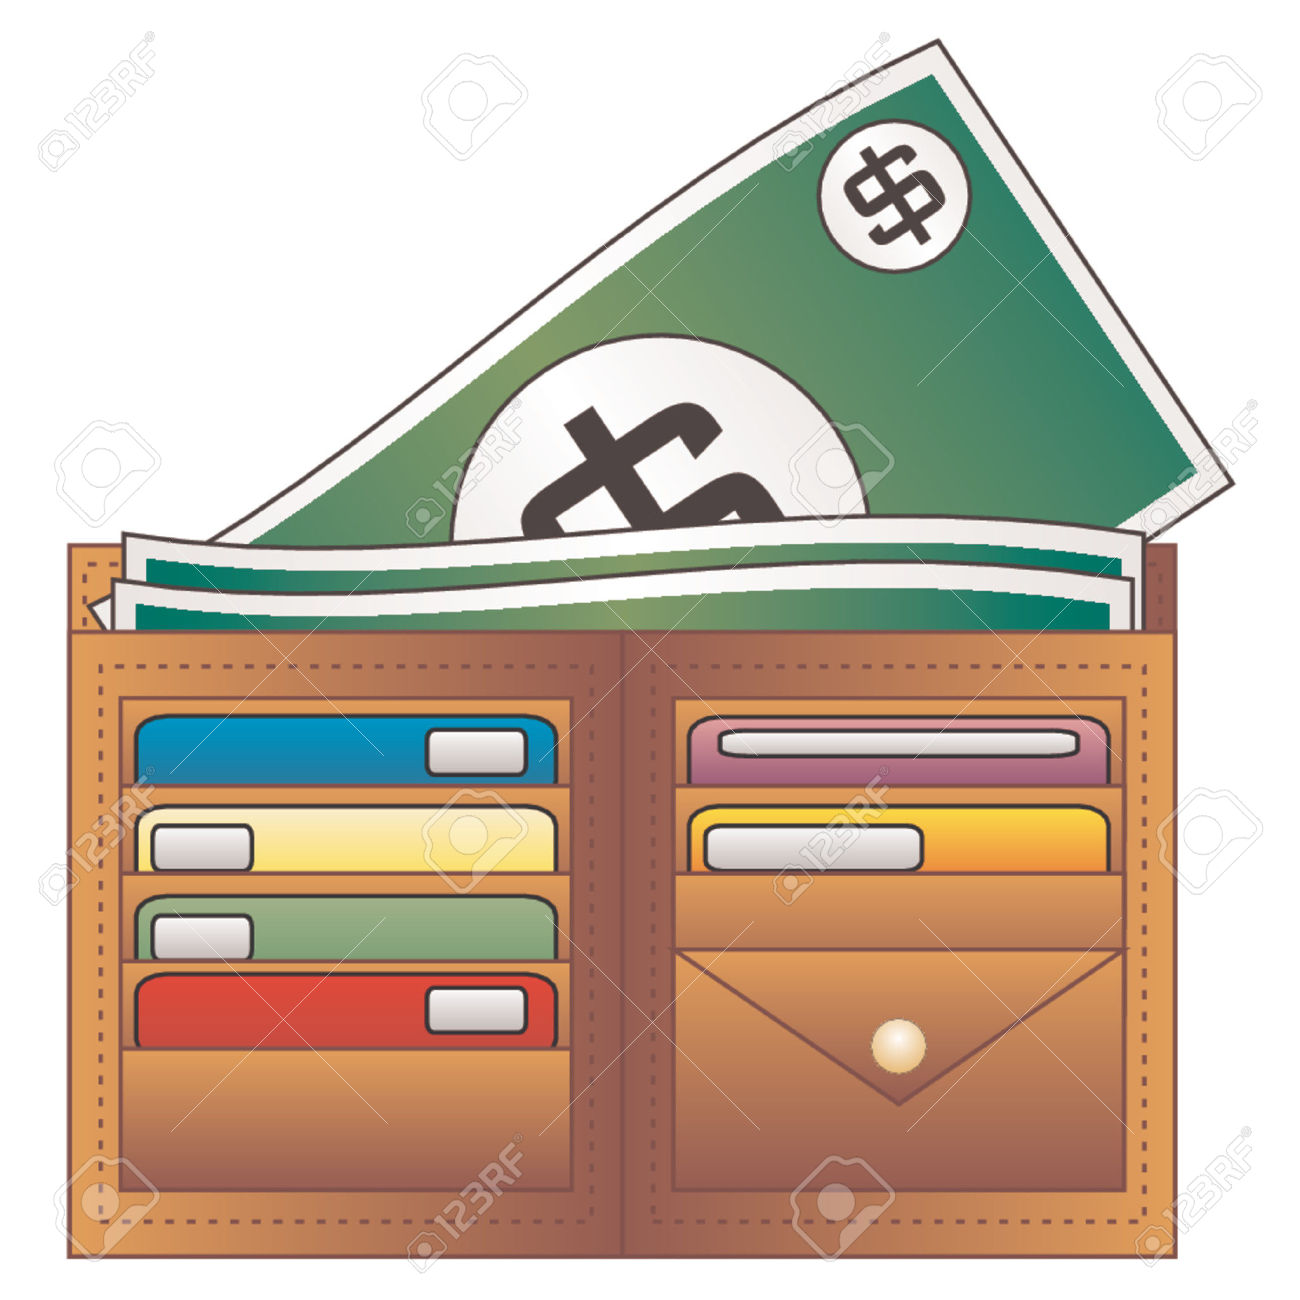 Money Wallet Clipart (42+).